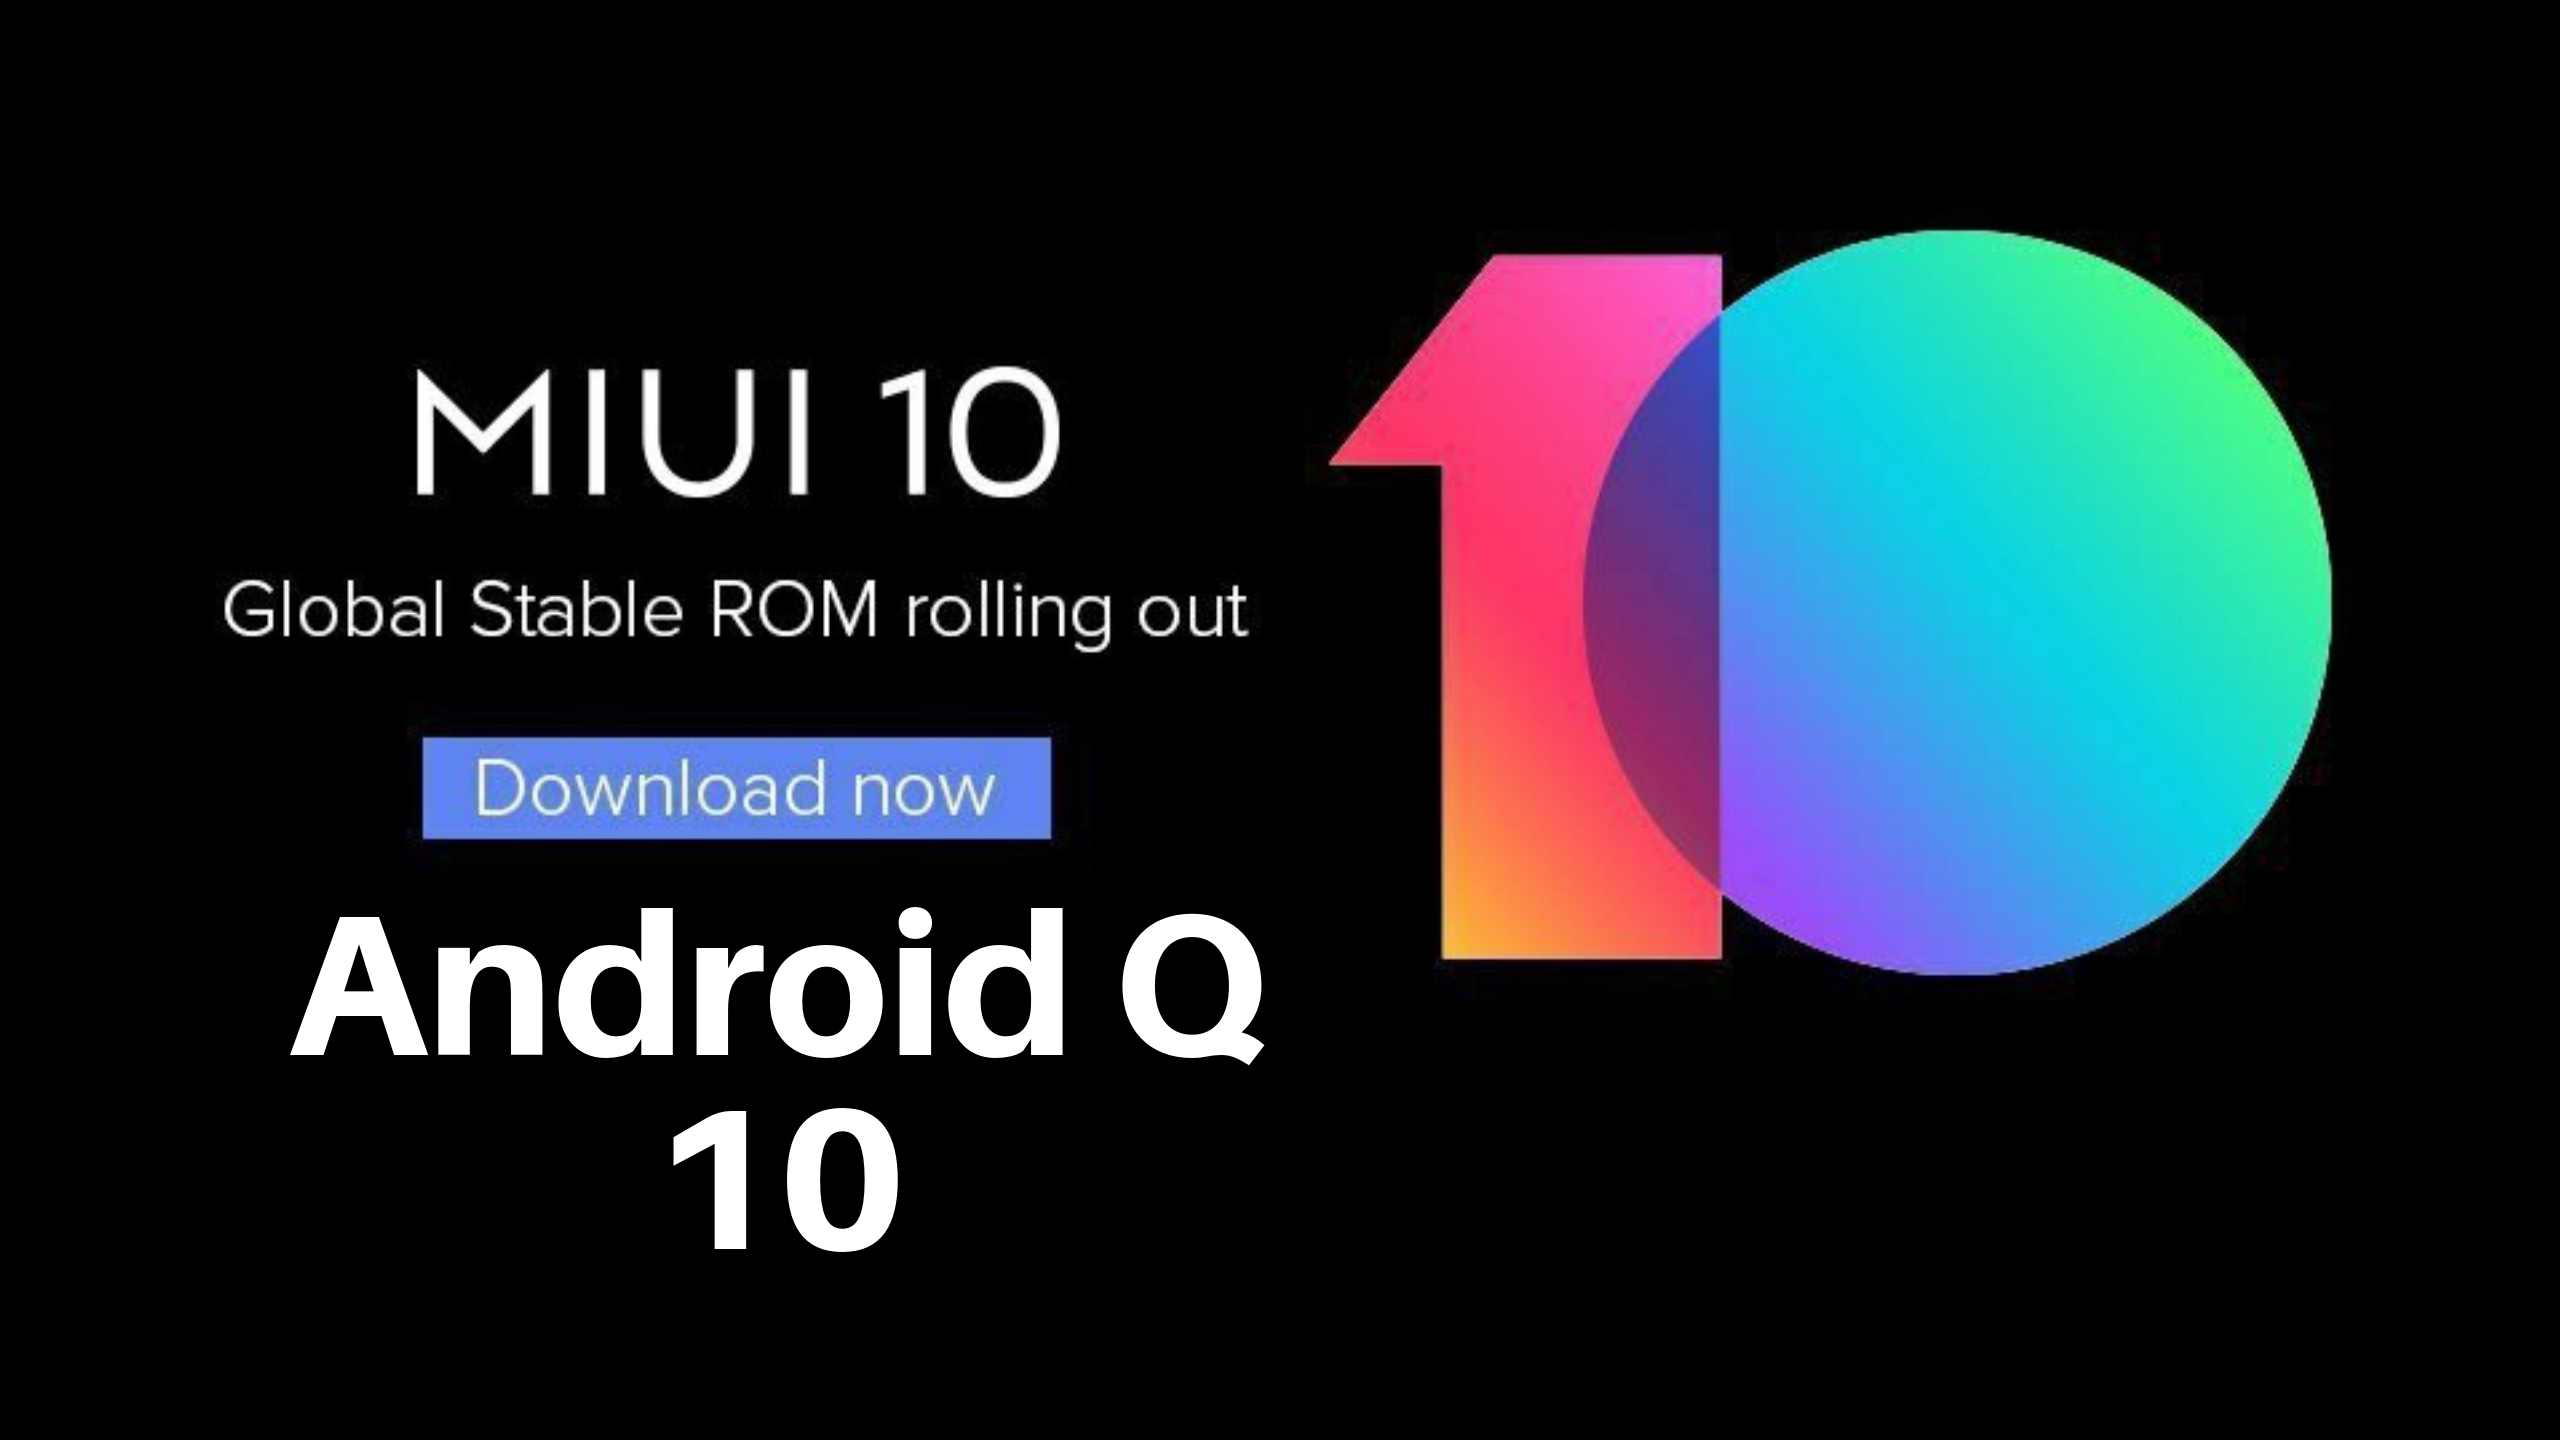 Android Q Miui 10 4 7 0 Global Stable Update for Redmi K20